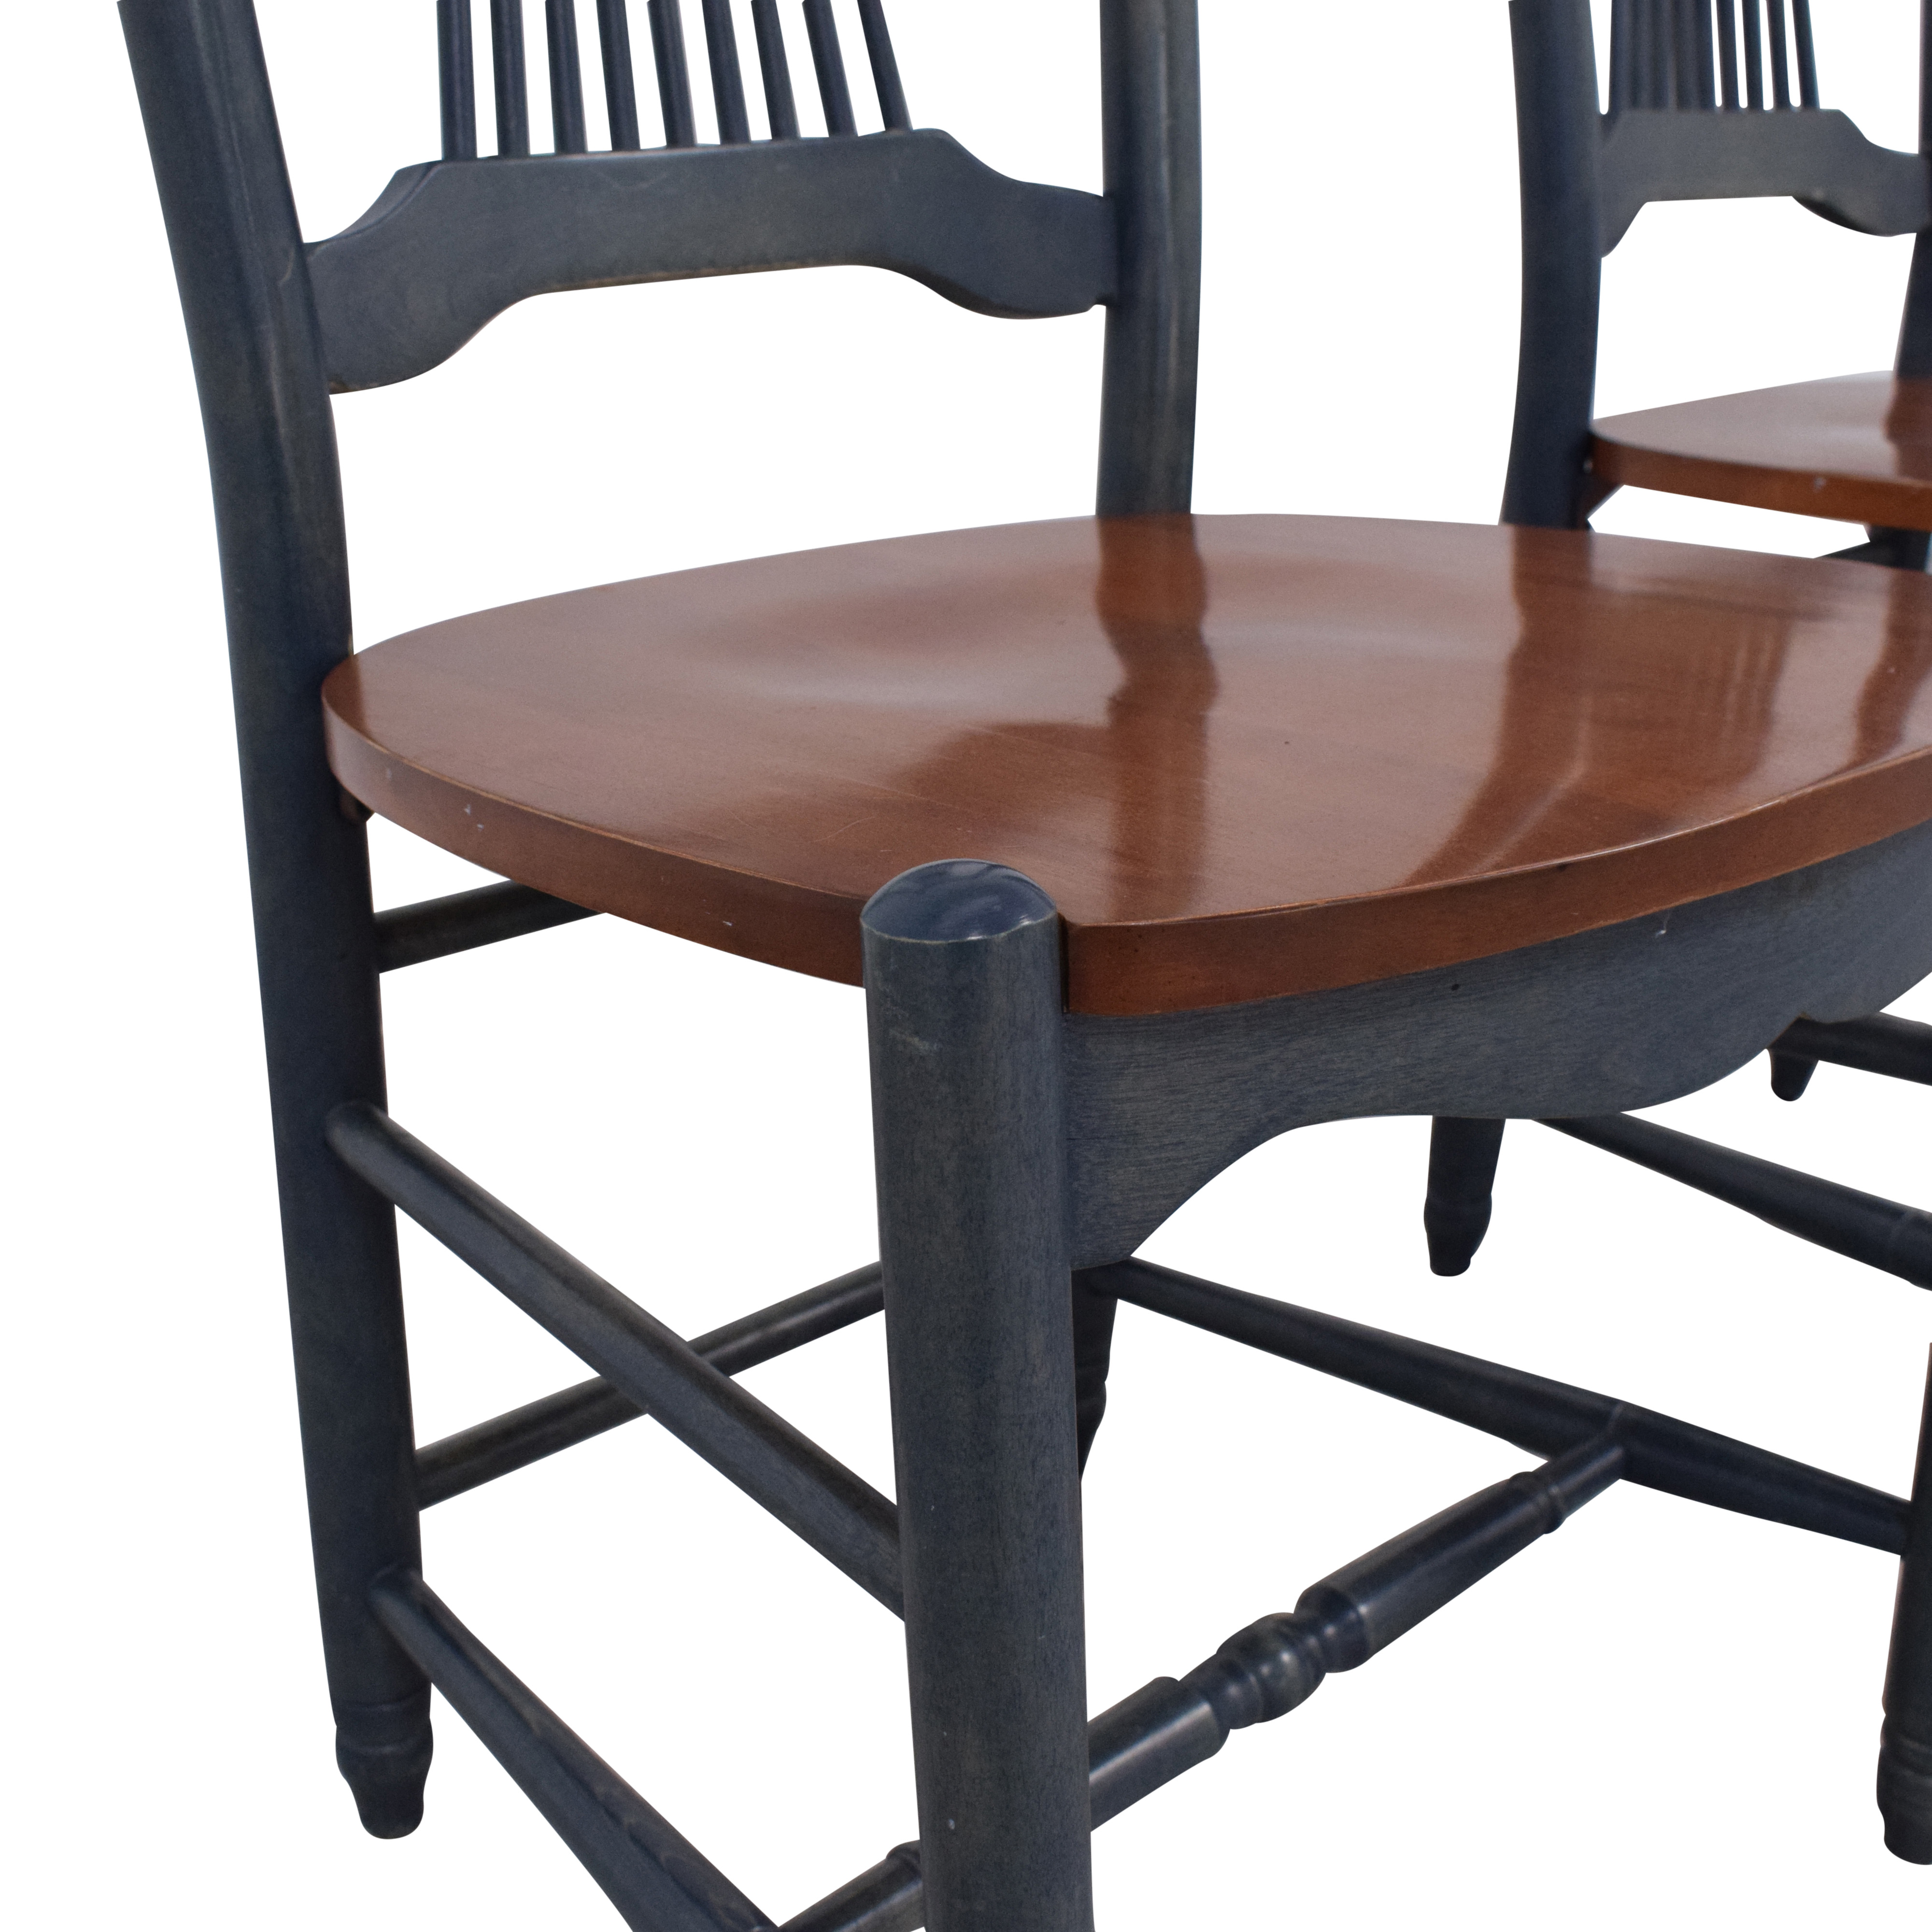 Canadel Custom Made Dining Room Chairs / Chairs